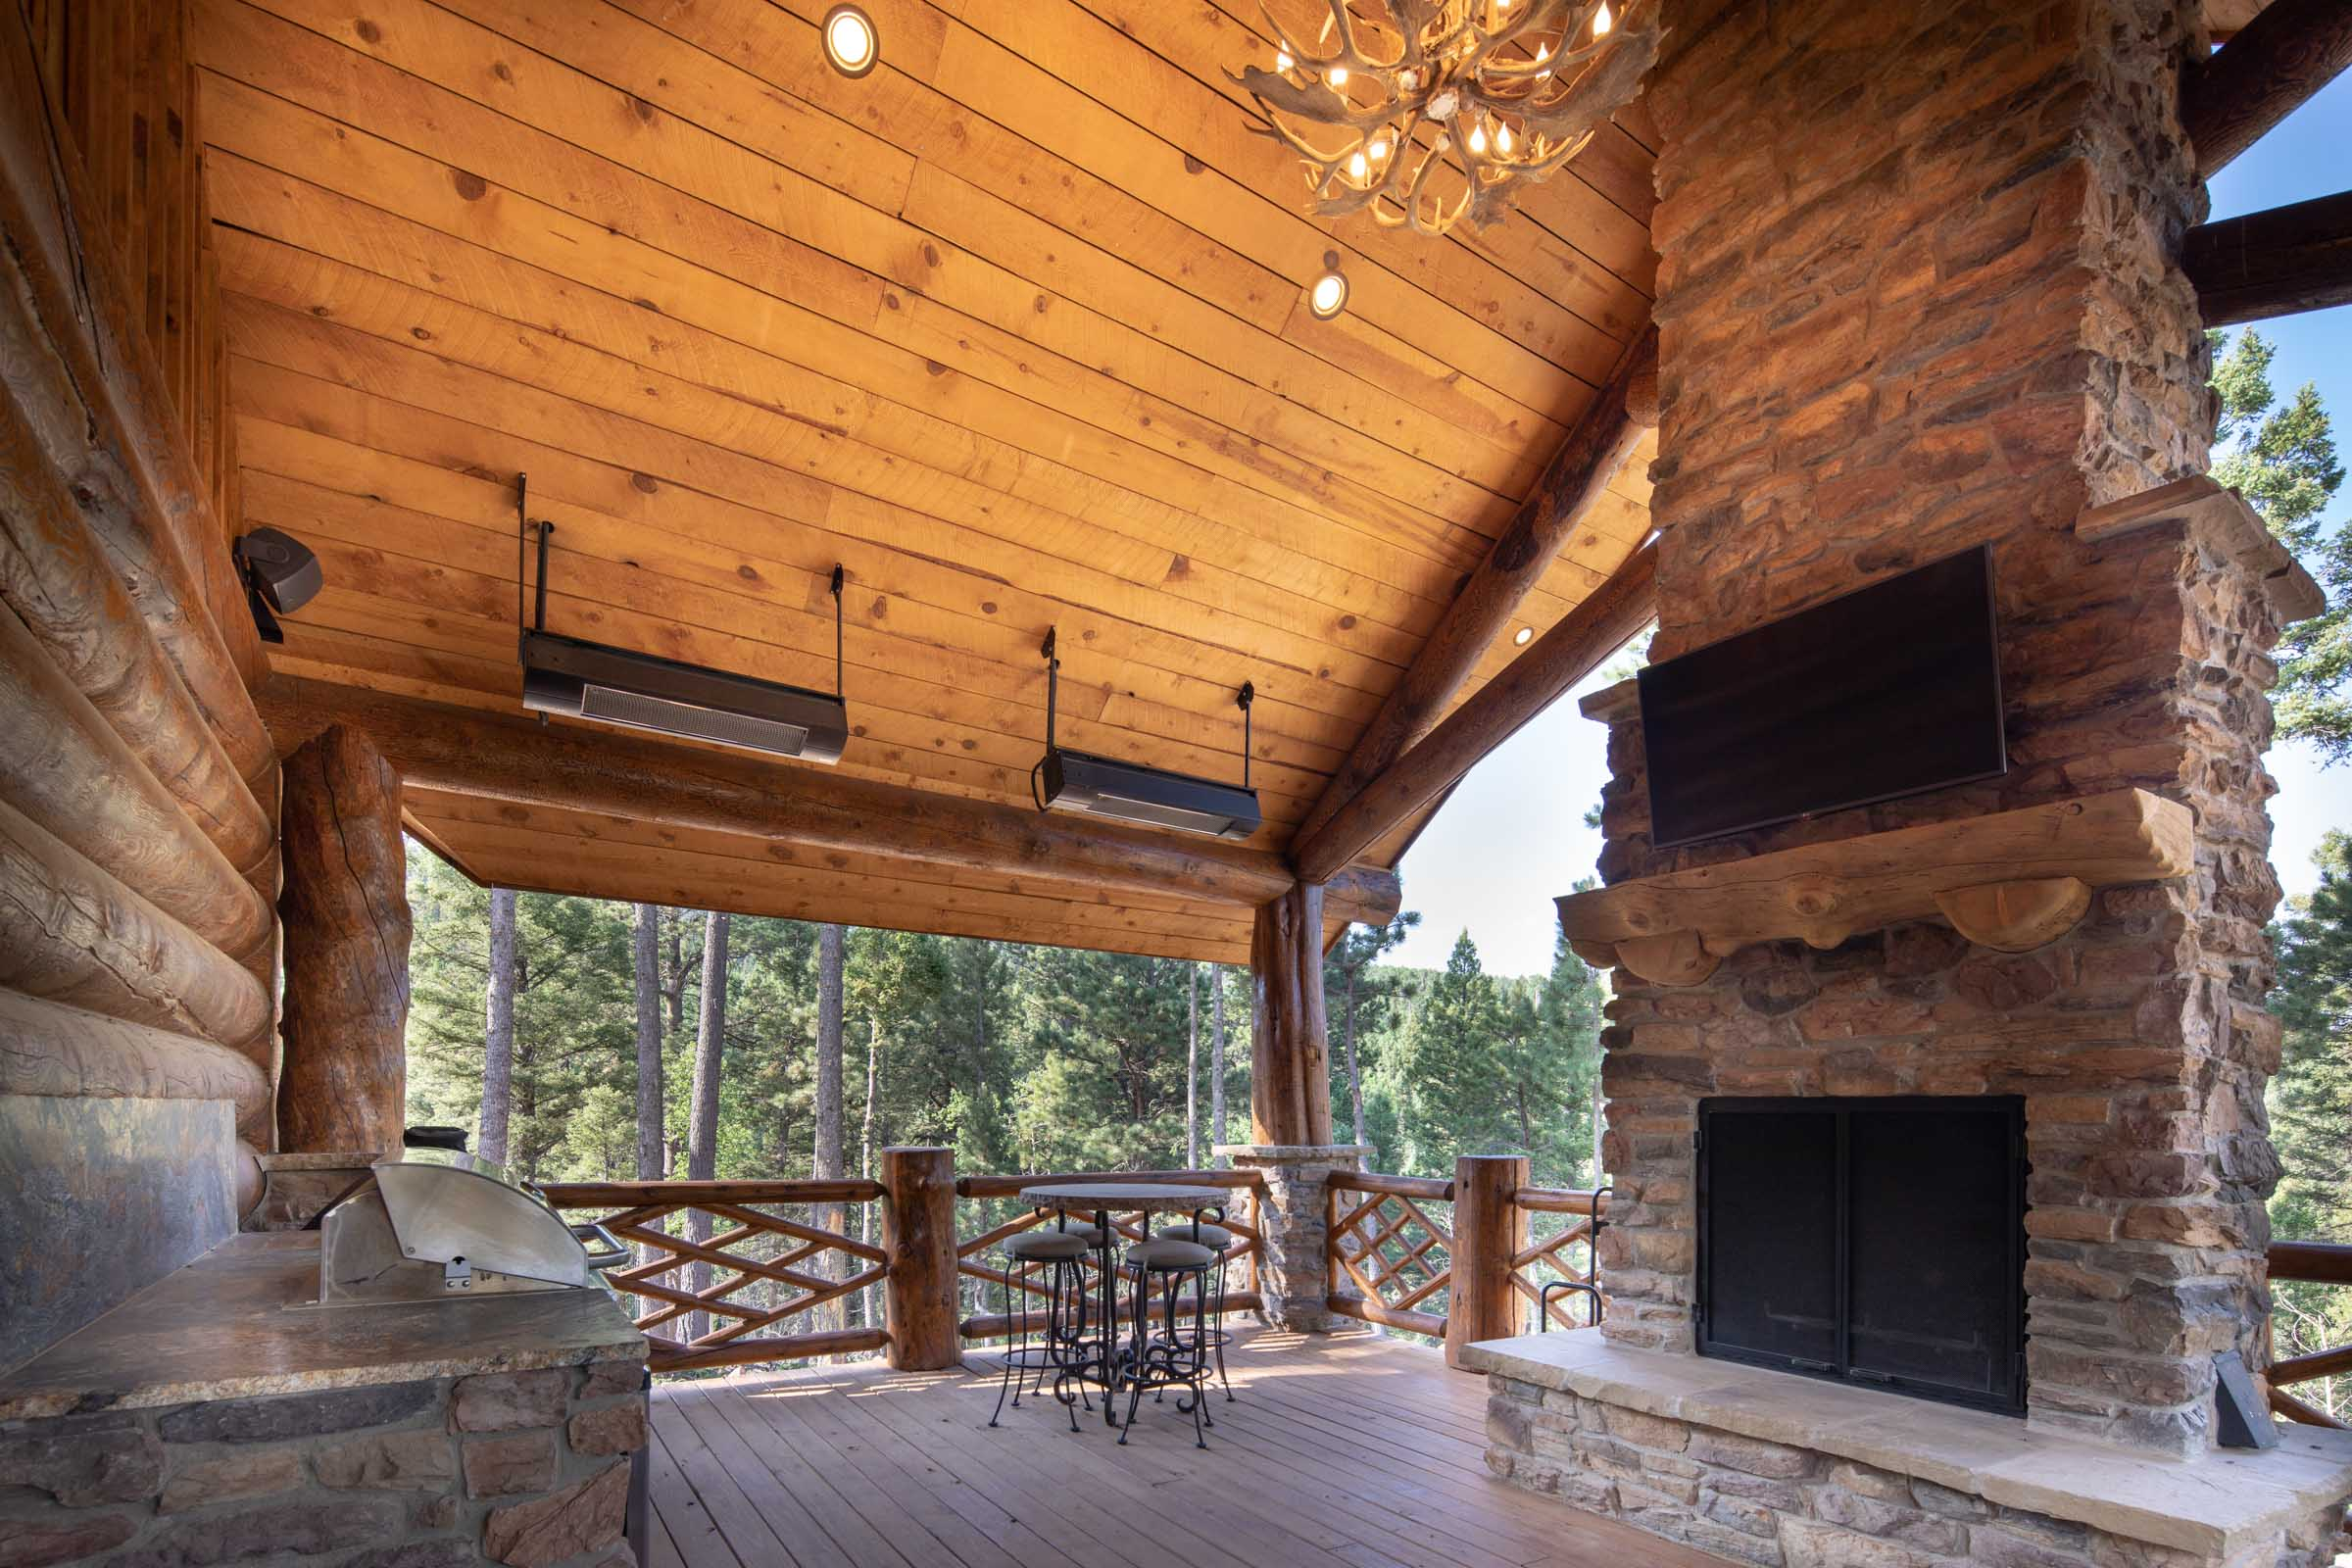 Luxury log cabin angel fire new mexico-27